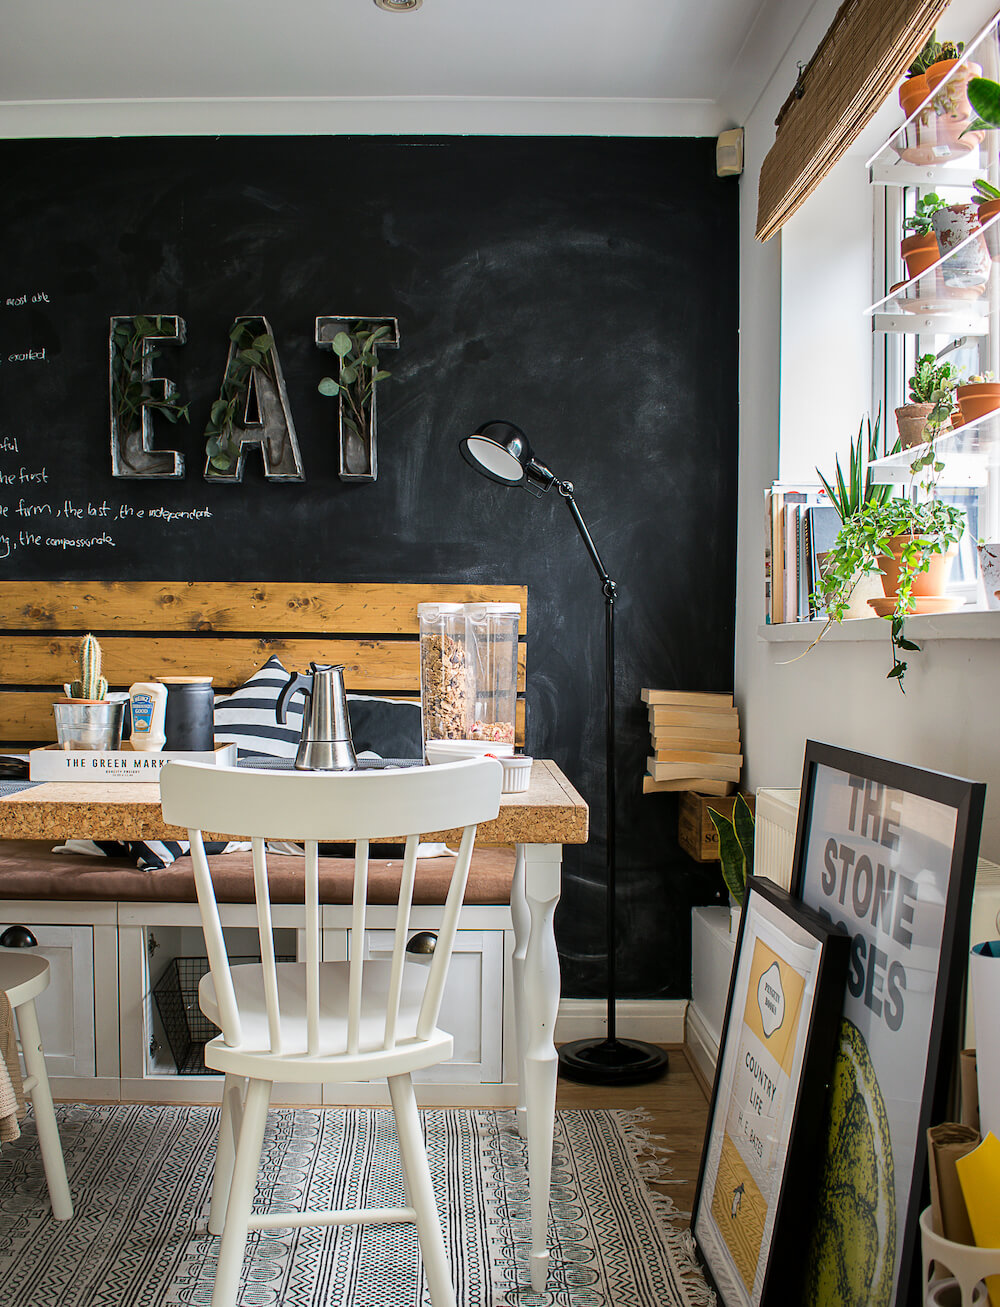 The window in the dining space. A cork board table with white chairs against a chalkboard wall seen